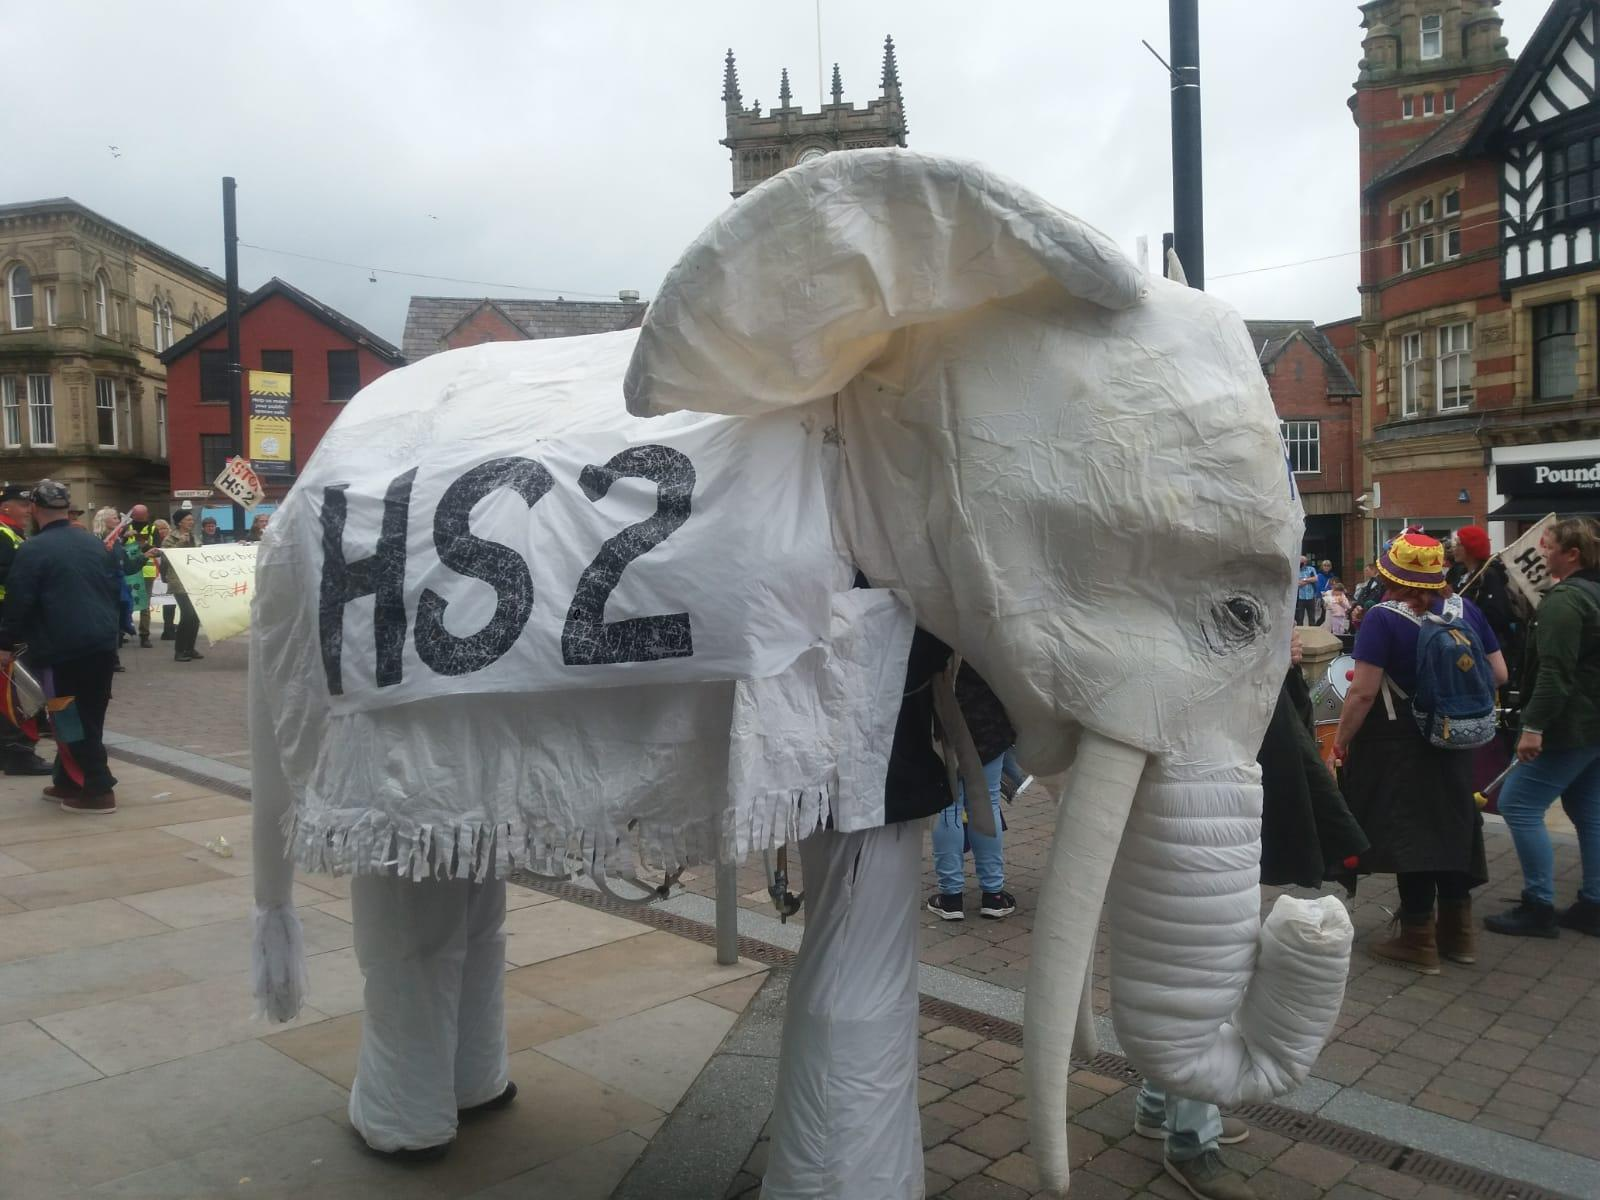 Demilitarise Education, Kill the Bill, and Stop HS2